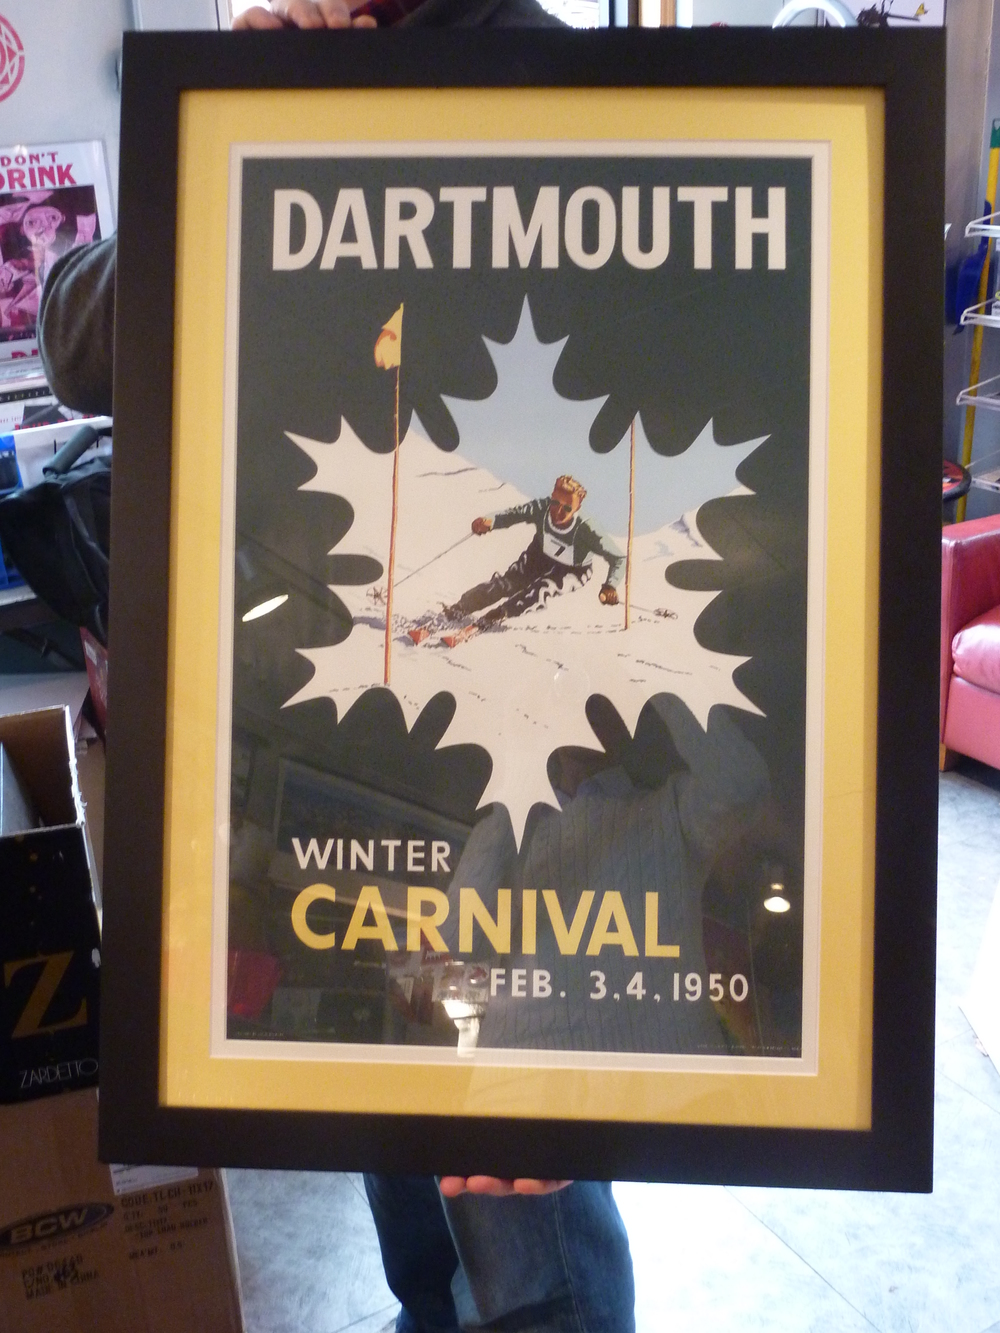 Dartmouth Winter Carnival 1950 Reprint.JPG